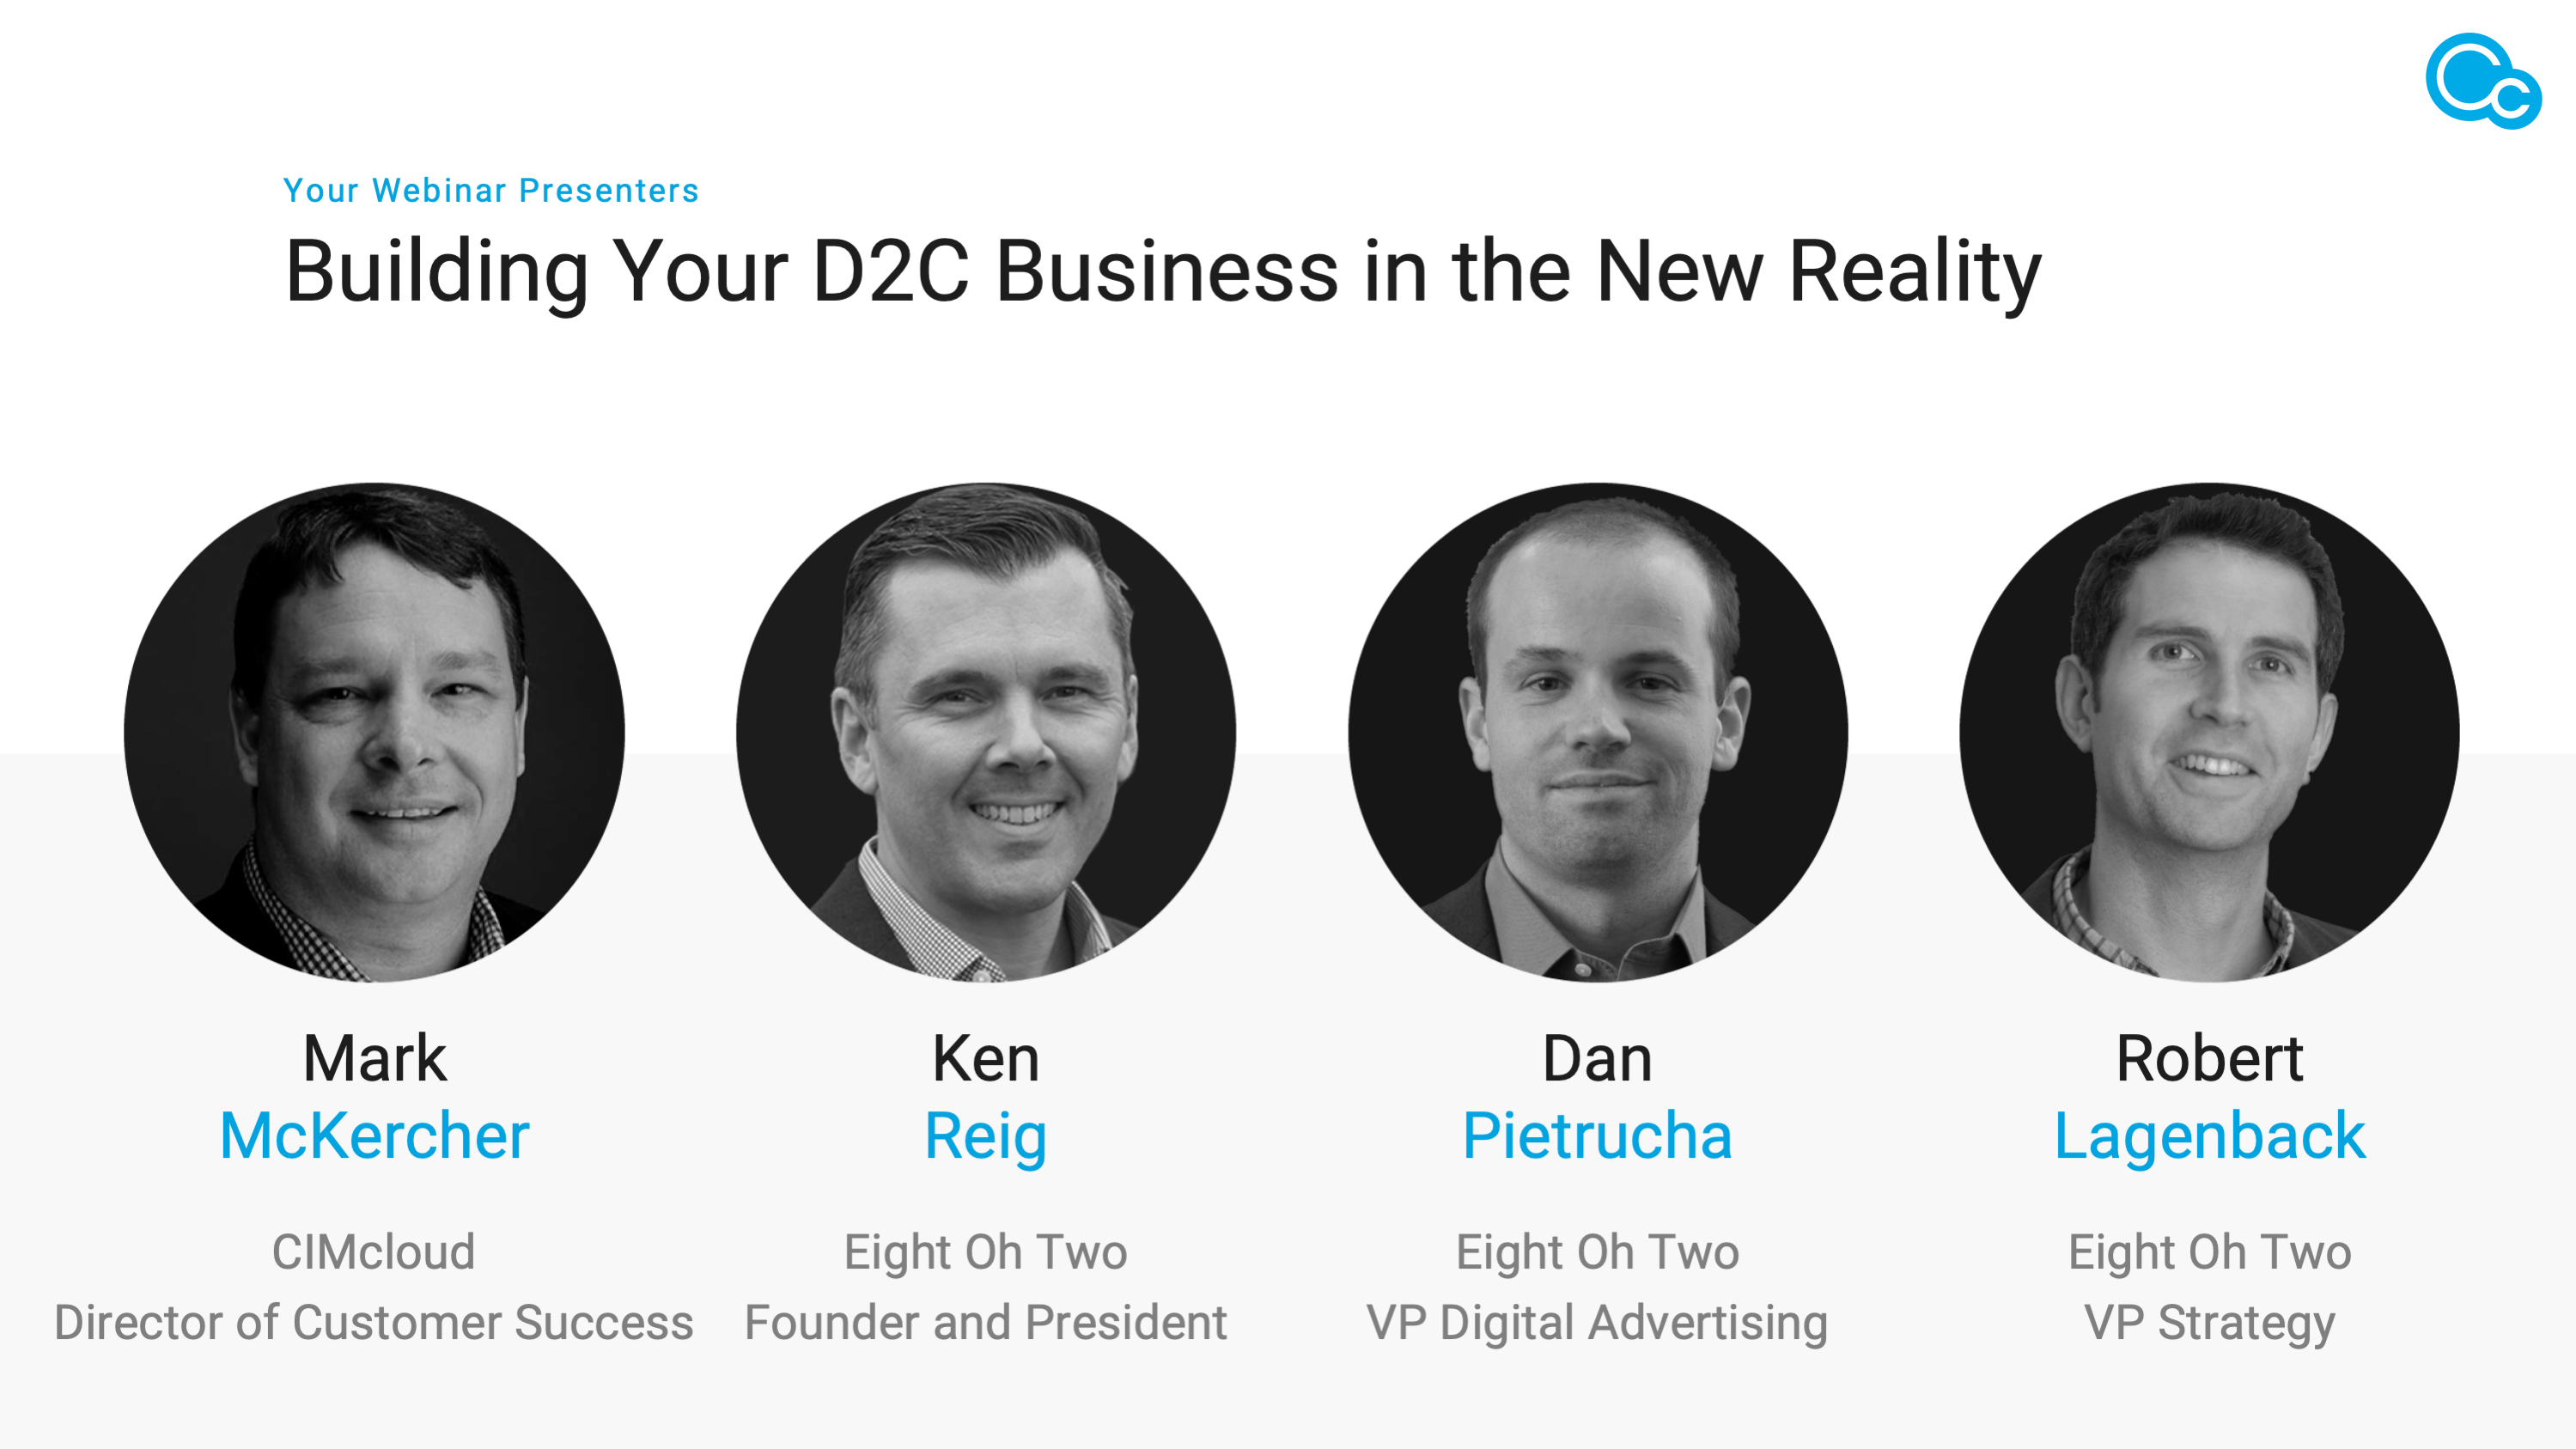 Building Your D2C Business in the New Reality image